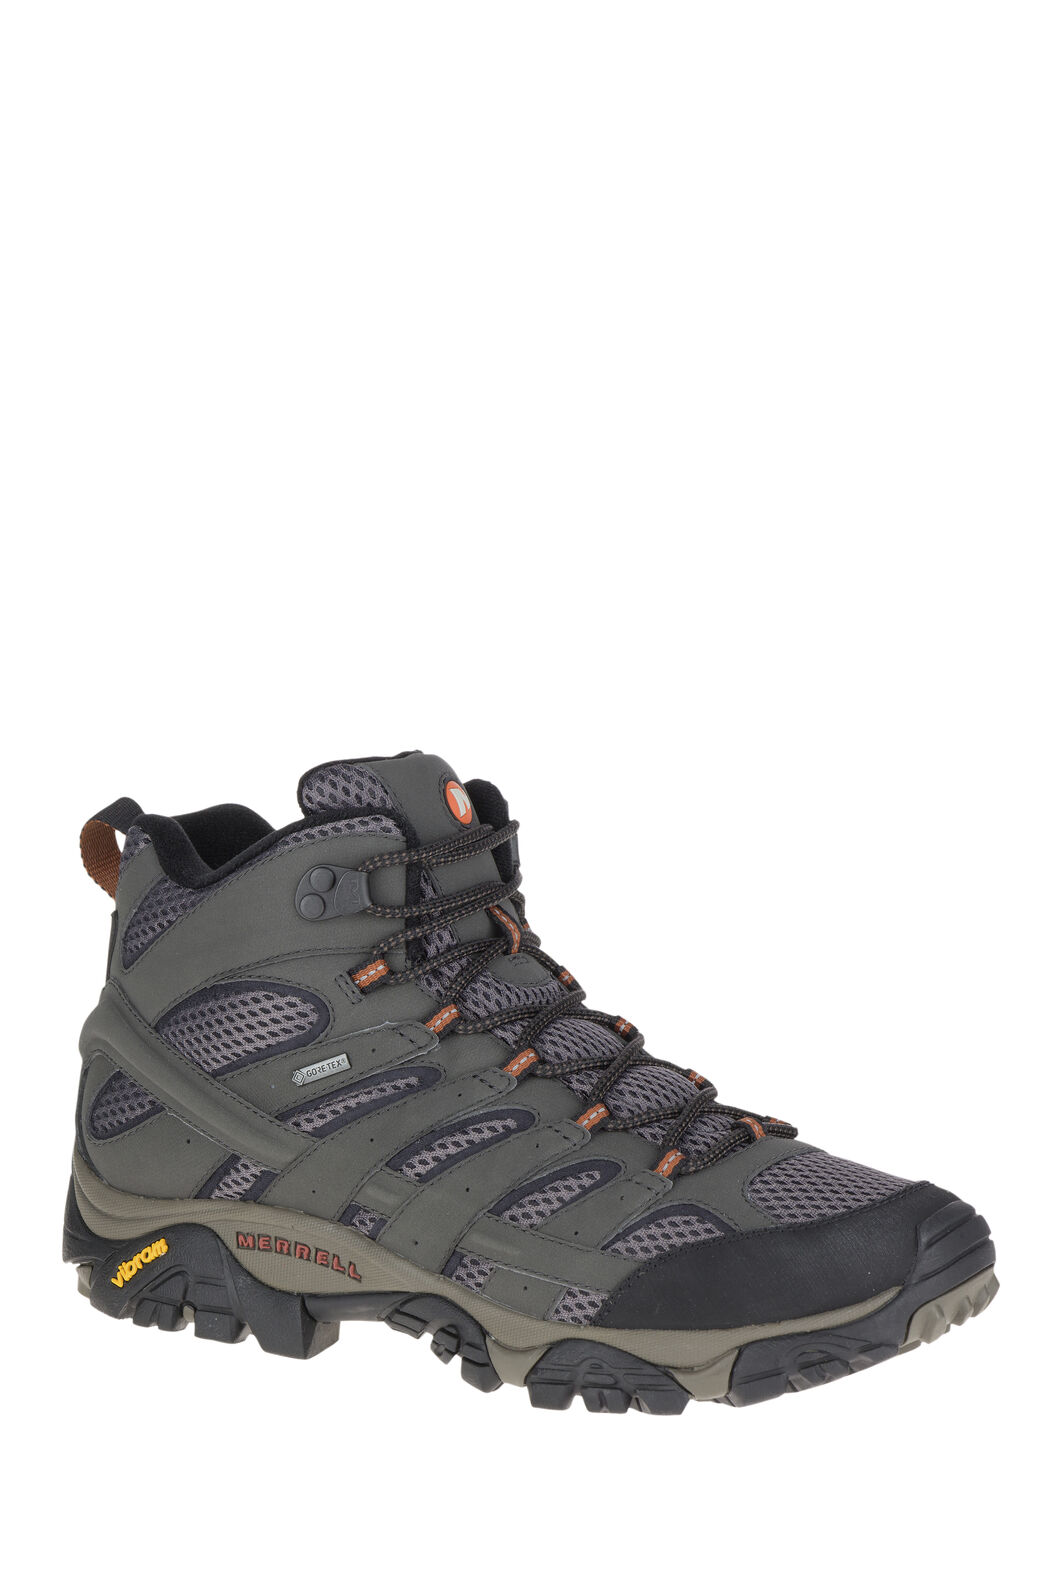 Merrell Moab 2 GTX Hiking Boot - Men's, Beluga, hi-res